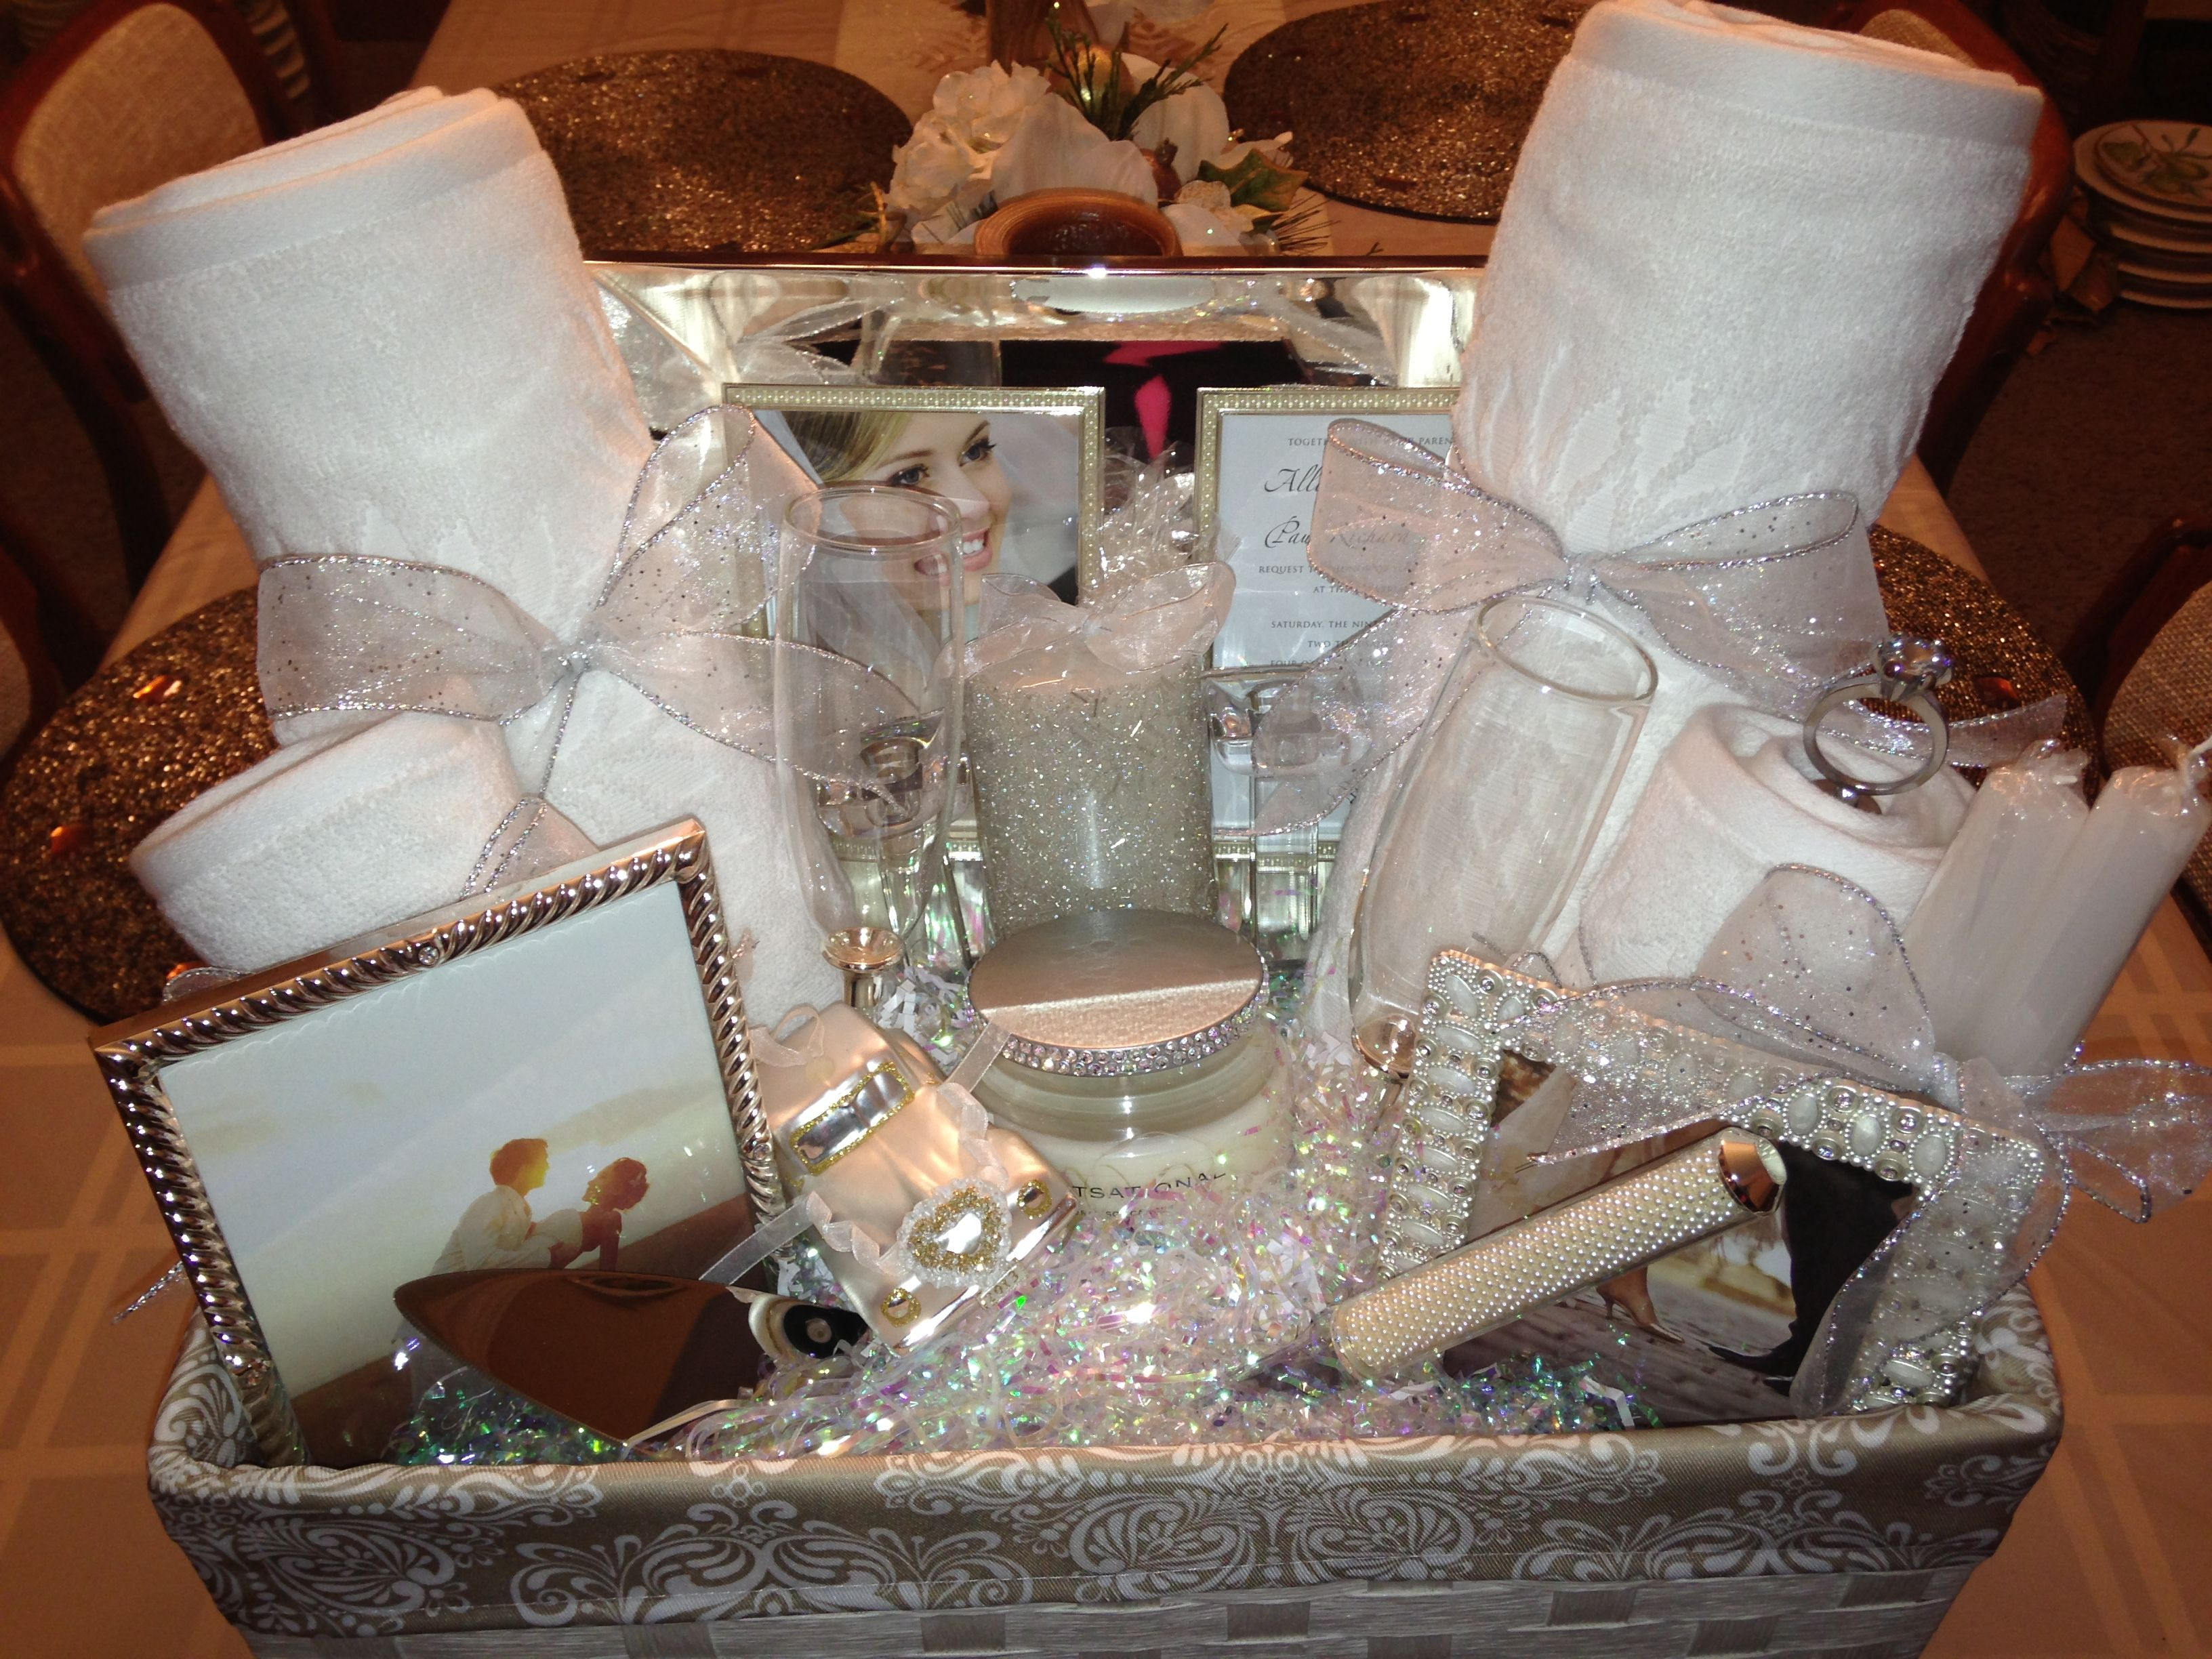 Homemade Wedding Gift Ideas For Bride And Groom: Bridal Shower Gift Basket Ideas. Ideasthatsparkle.com On